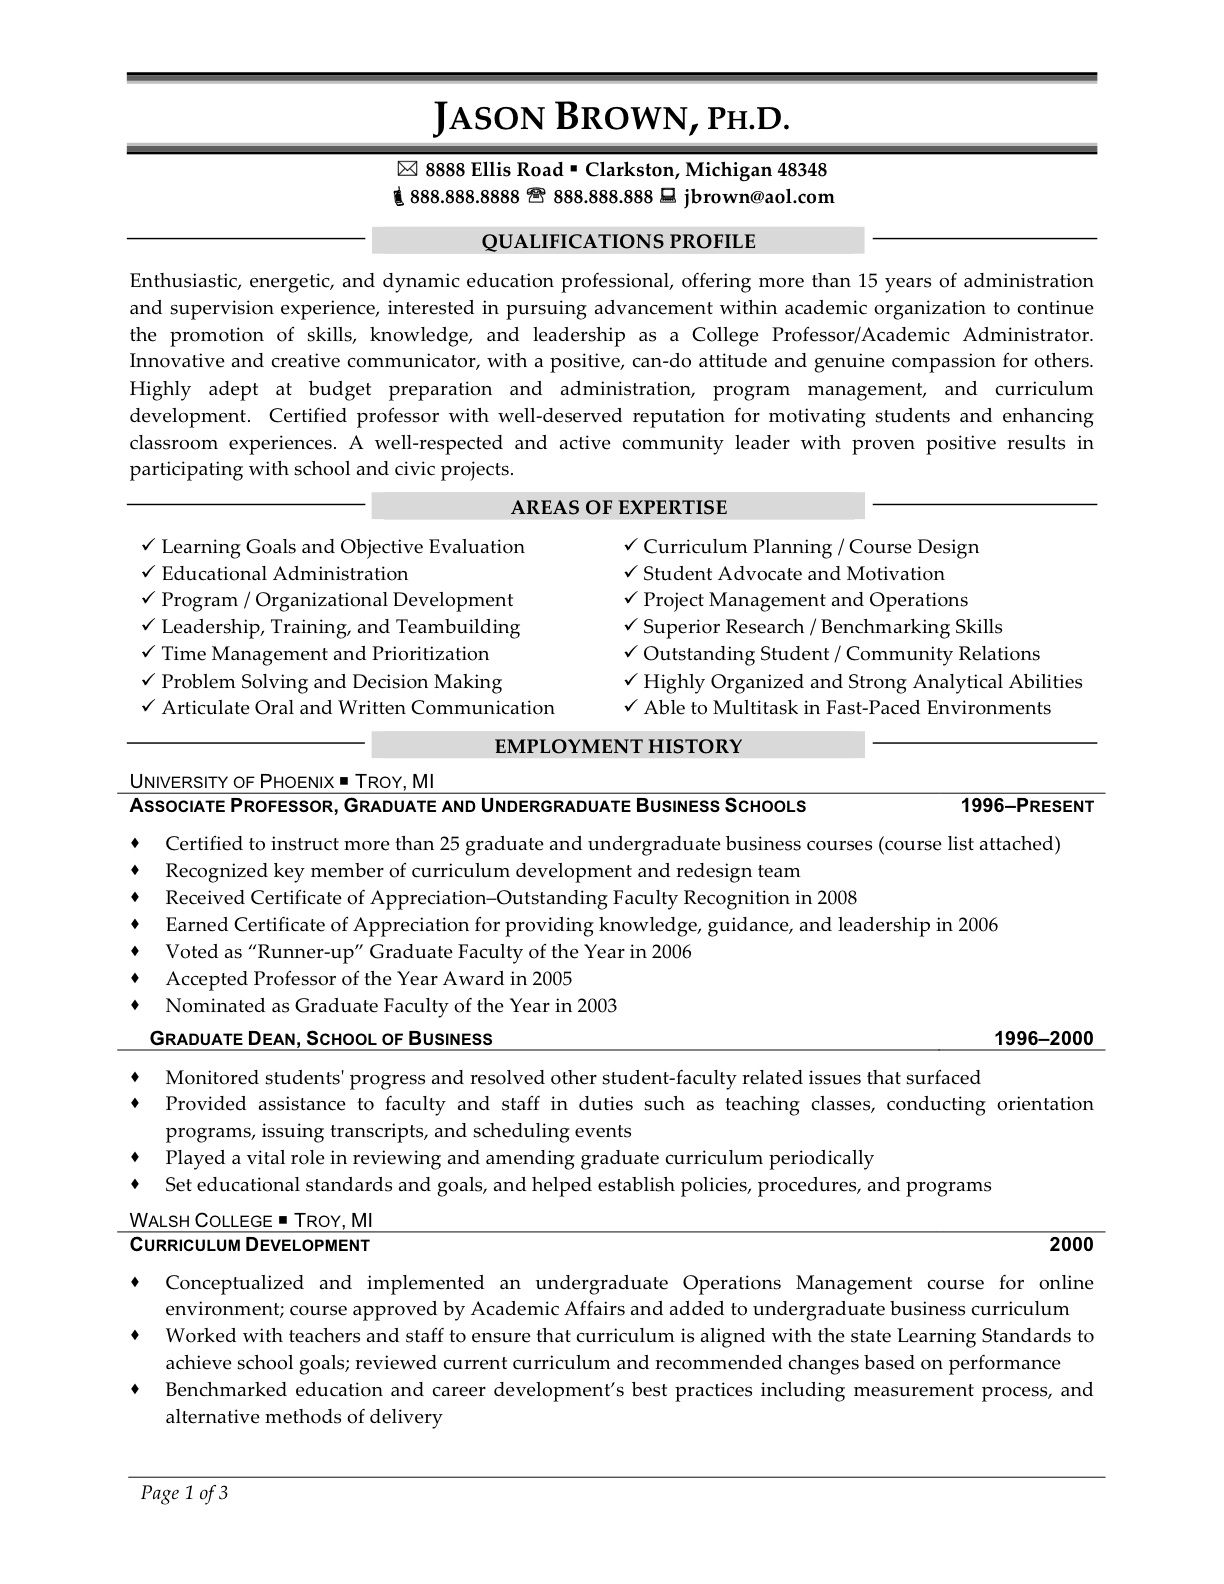 Sample Phd Resume For Industry Sample Phd Resume For Industry Engineering  Phd Resume Sample Phd Resume Example Phd Resume Format Phd Resume Template  Phd ...